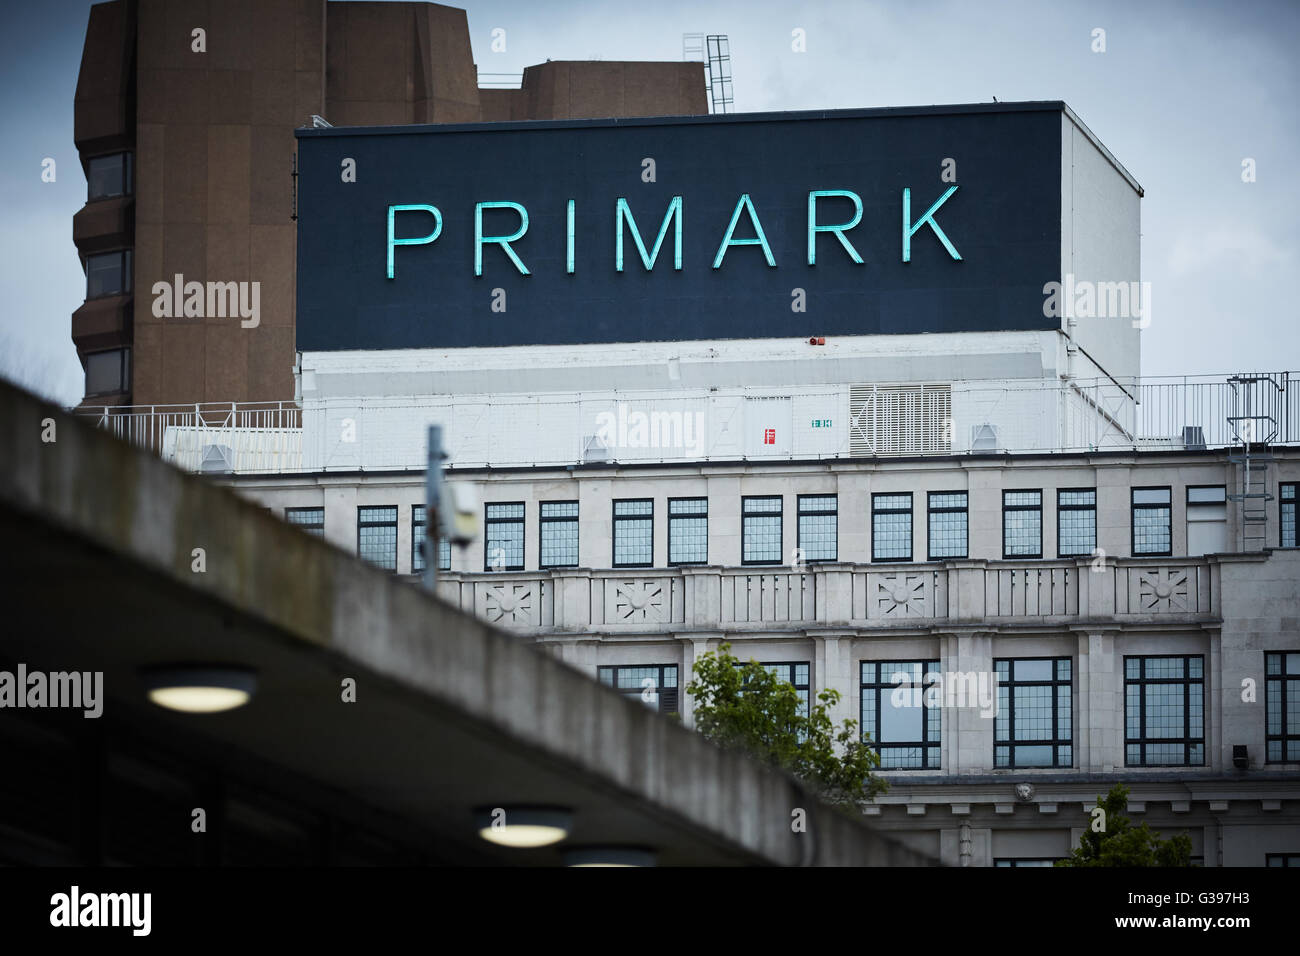 primark building sign in piccadilly manchester the grand white stone exterior built in 1877 as lewis s department store has be